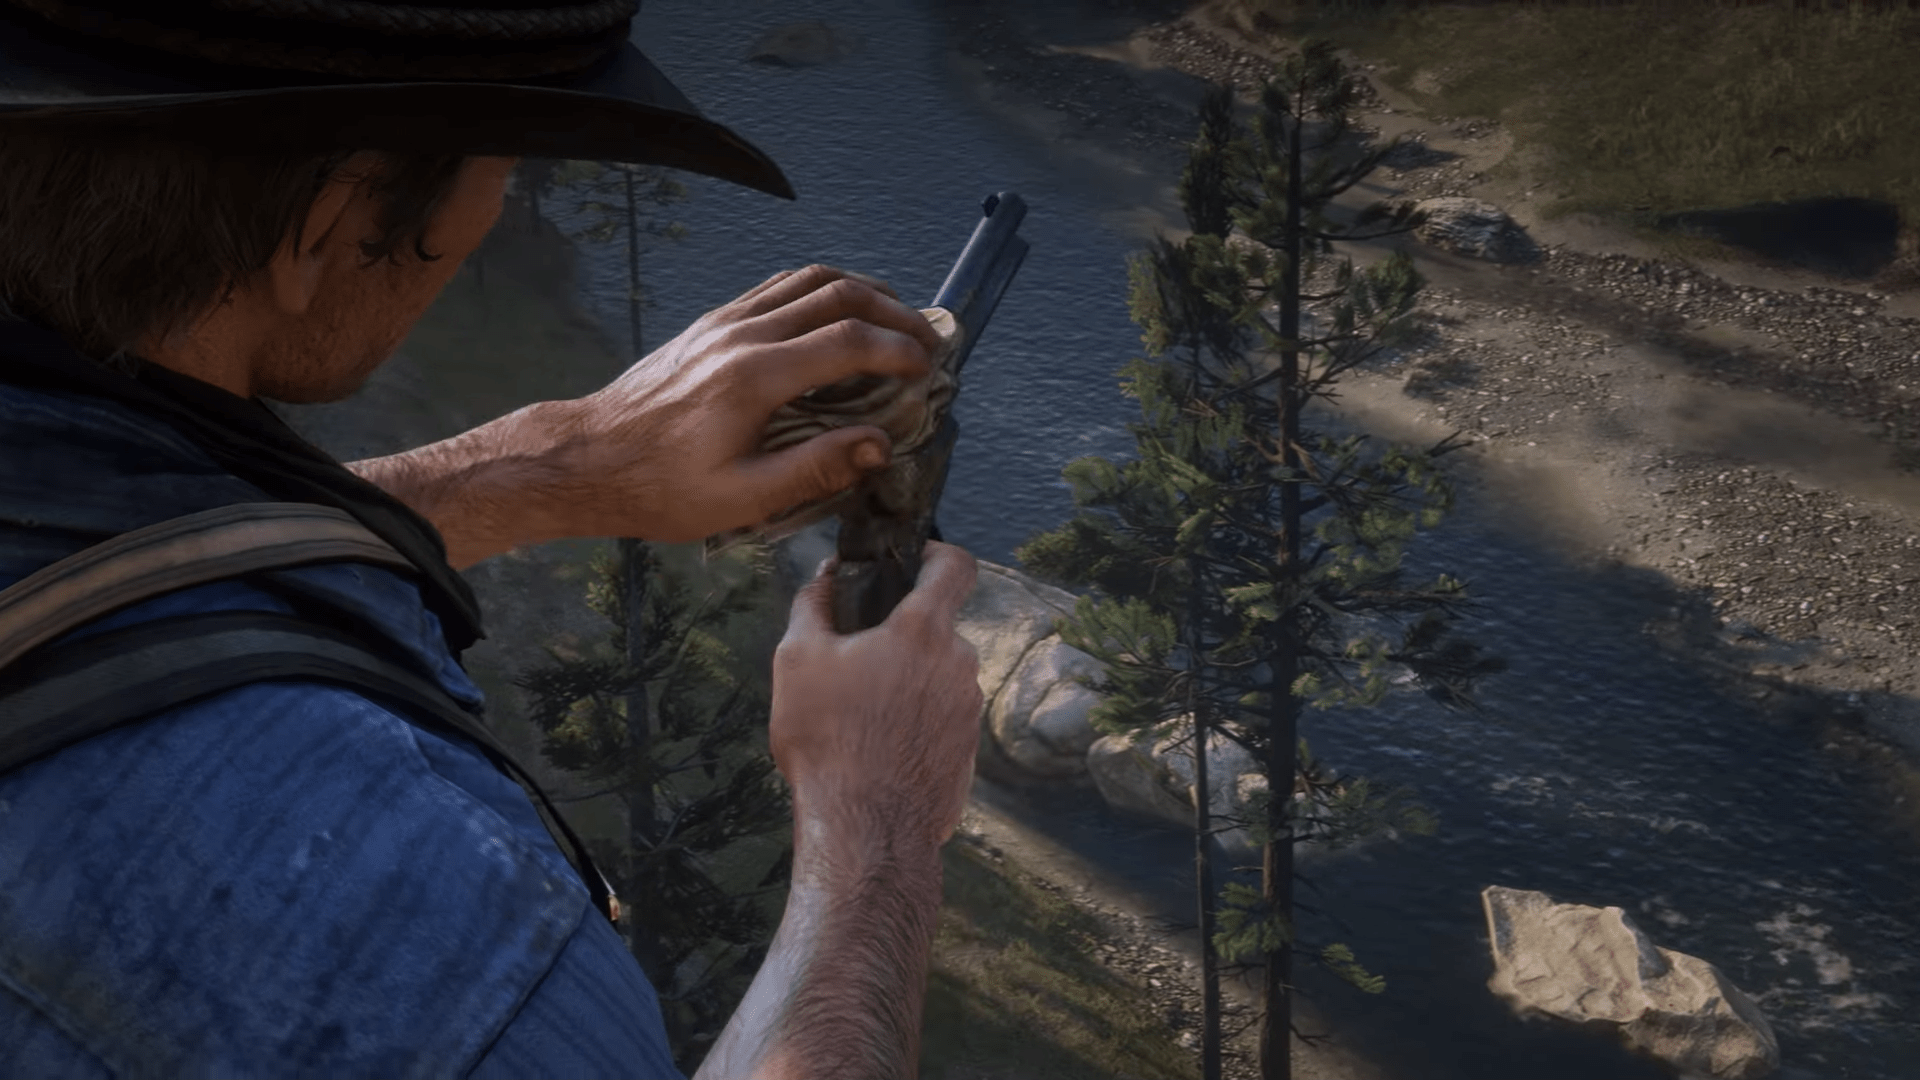 Red Dead Redemption 2 Launches On Steam Today, Many Report They Can't Enter The Game